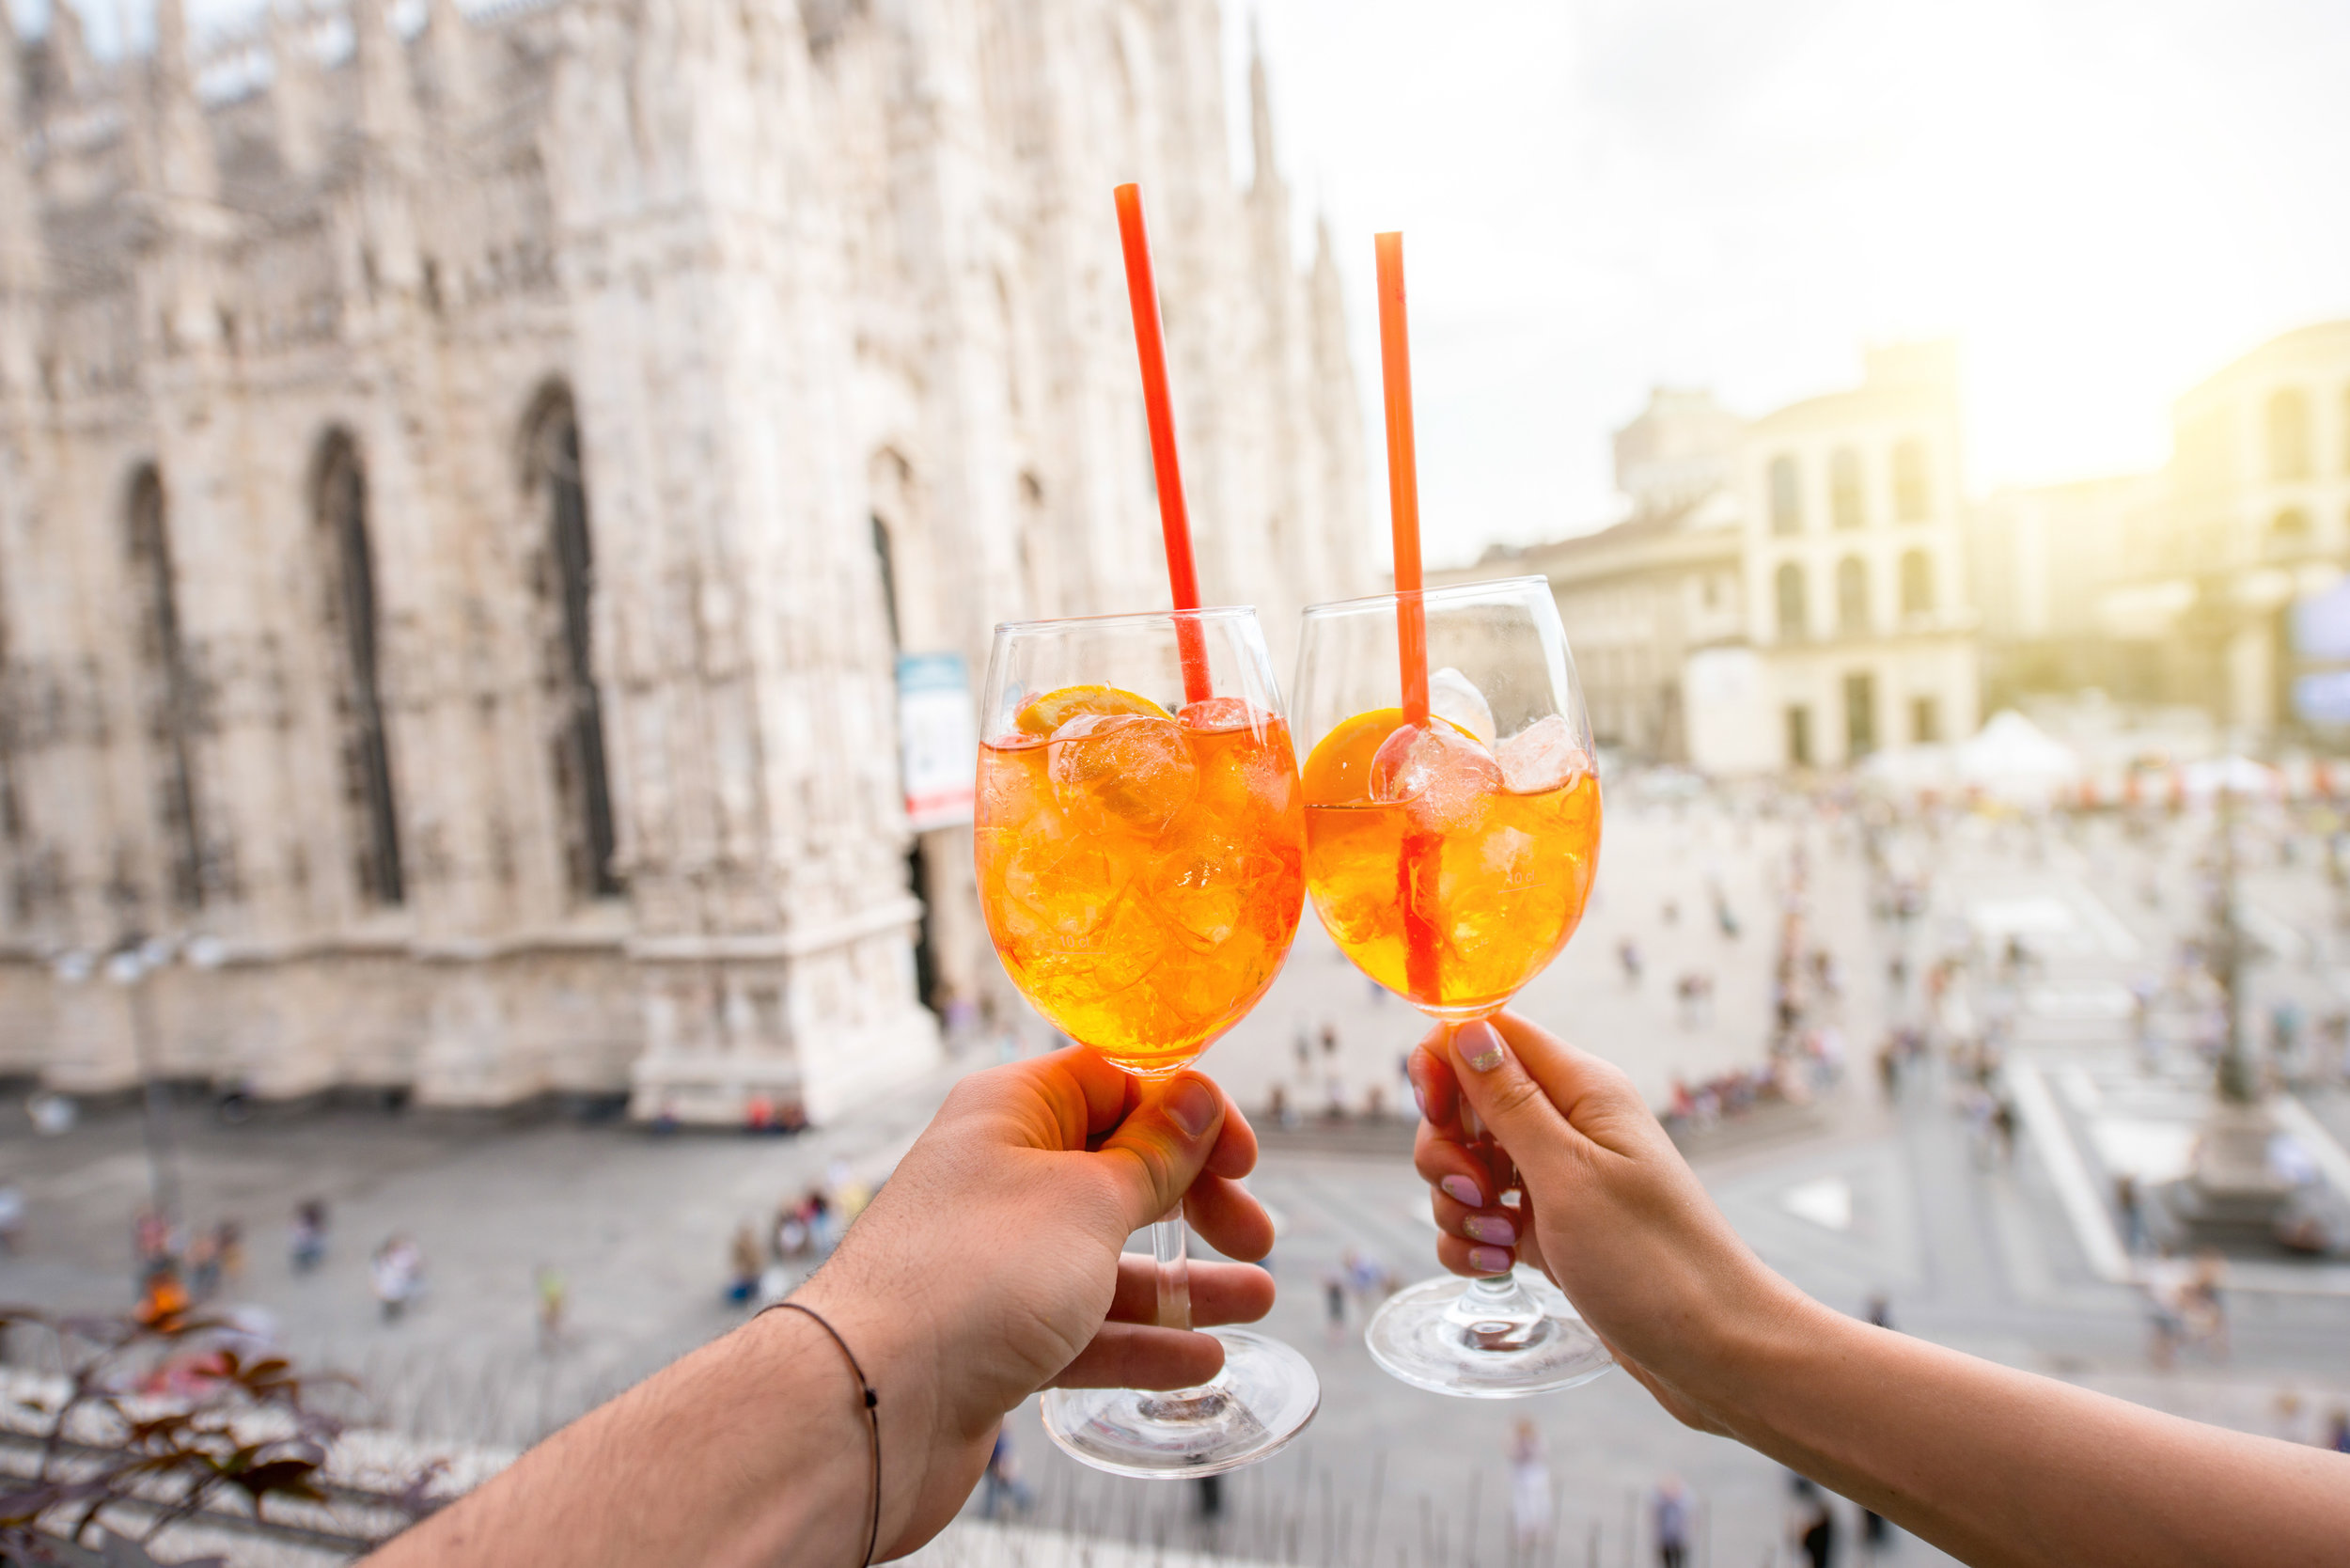 Random Fact: - On 29 June 2012, thousands of Aperol fans descended on the iconic Piazza San Marco in Venice to attempt making a Guinness World Record™ for the 'Largest Aperol Spritz Toast'. Over 2,600 people joined in the social spirit of Aperol Spritz, eager to clink their glasses to make history.